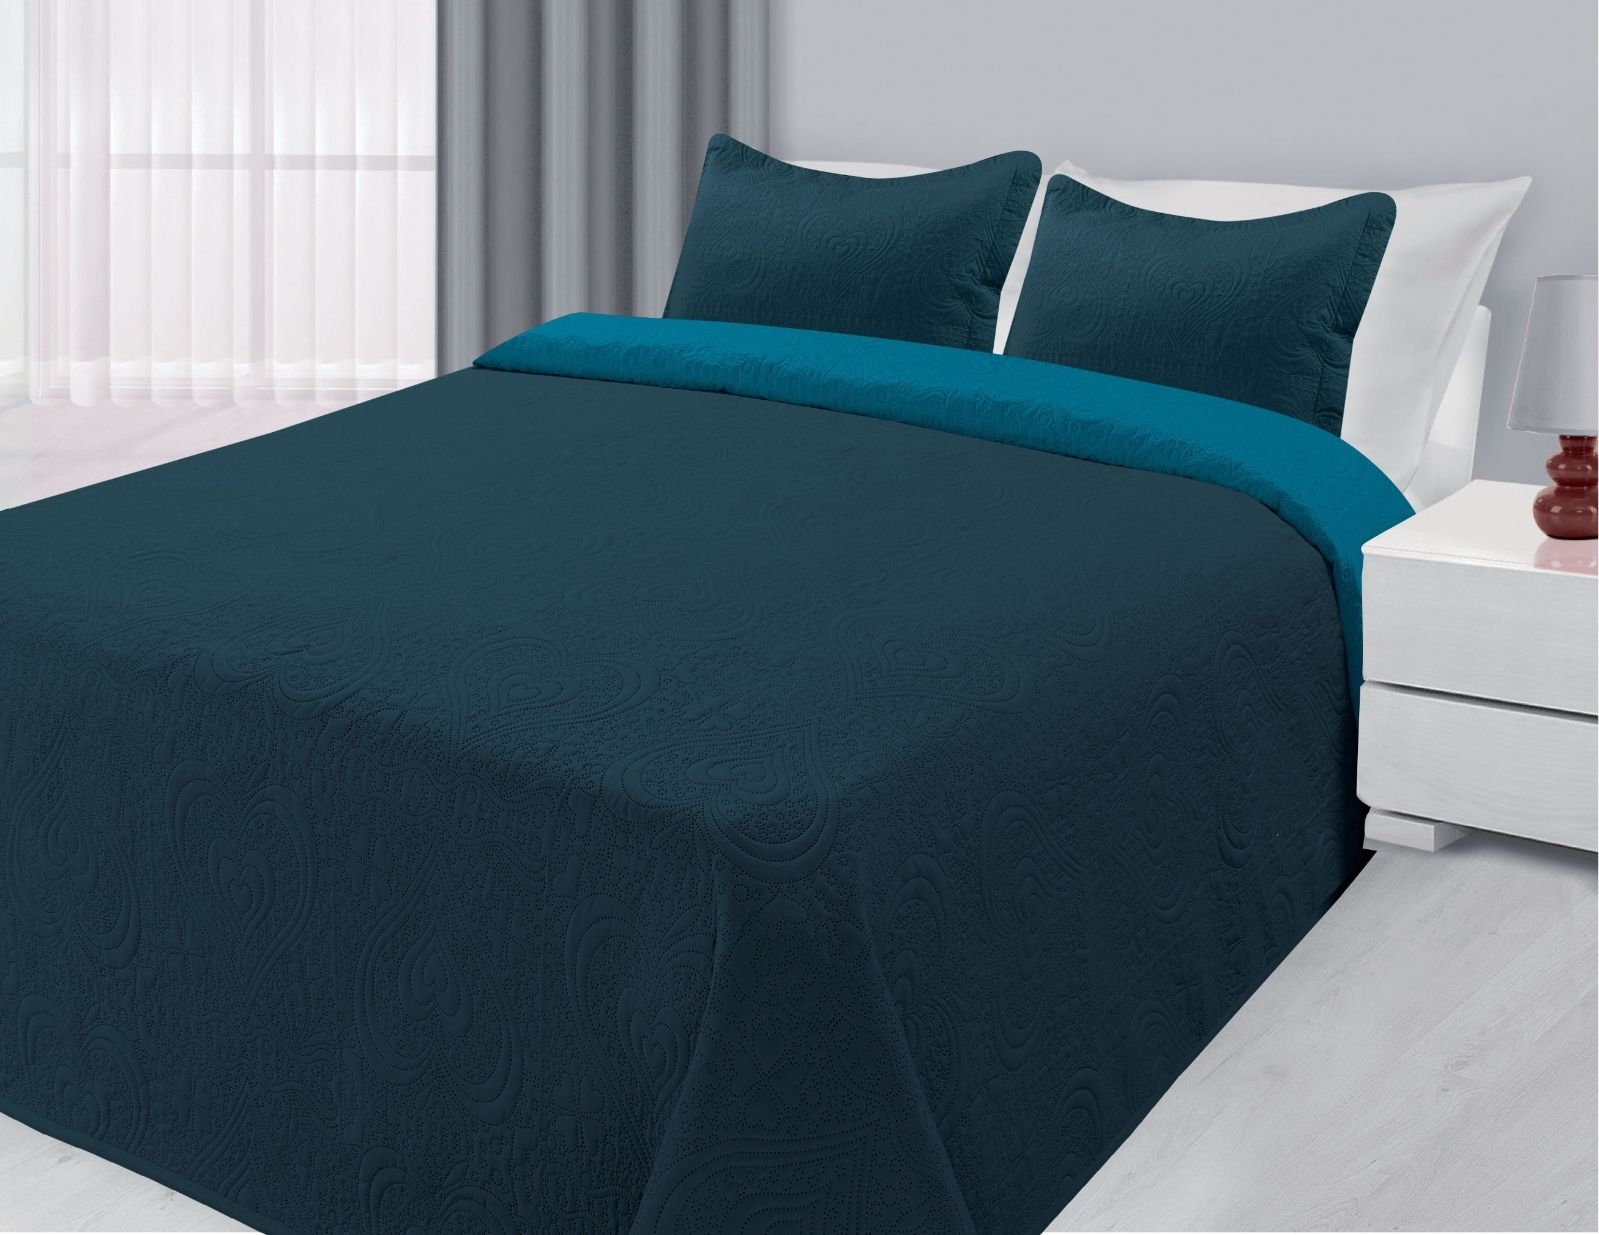 Click here to buy 3-Piece Reversible Quilted Bedspread Coverlet Navy & Blue Twin Size.